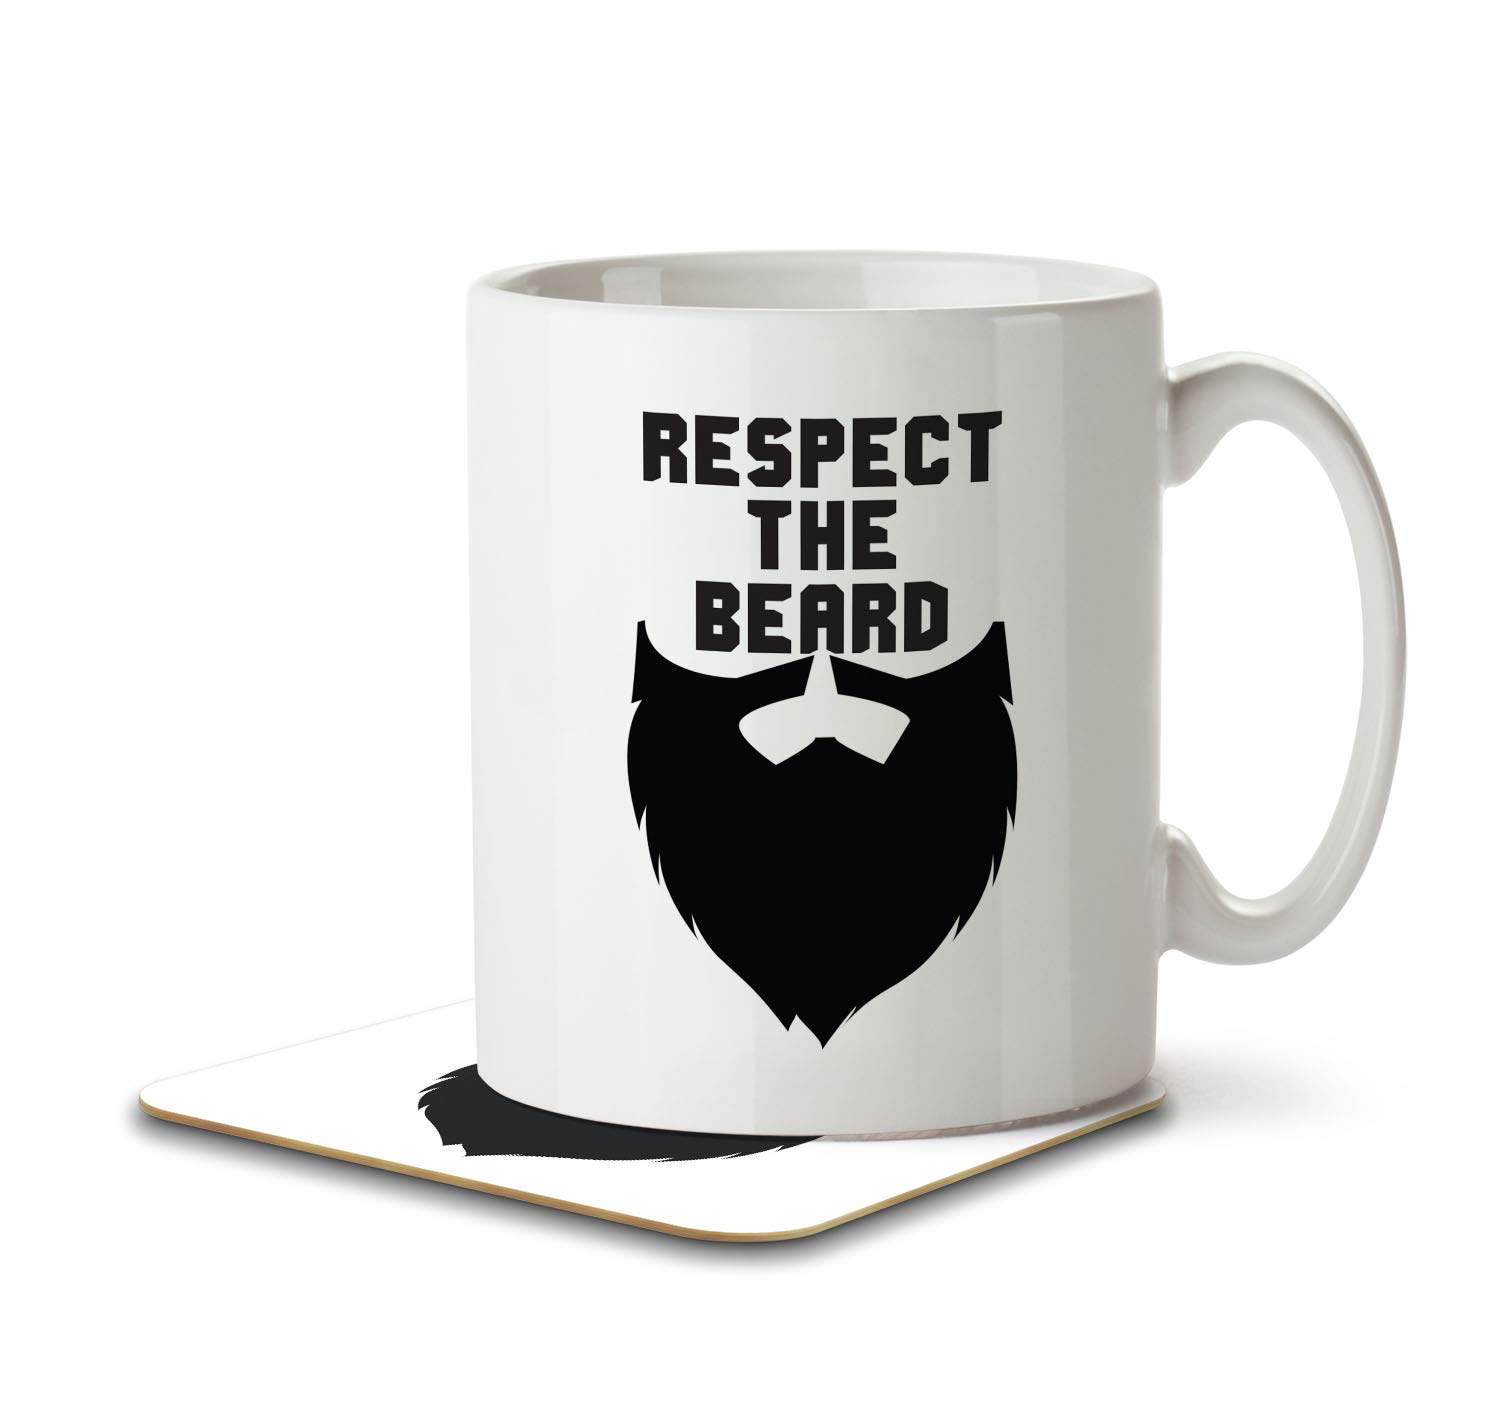 Respect the Beard - Mug and Coaster By Inky Penguin The Inky Penguin